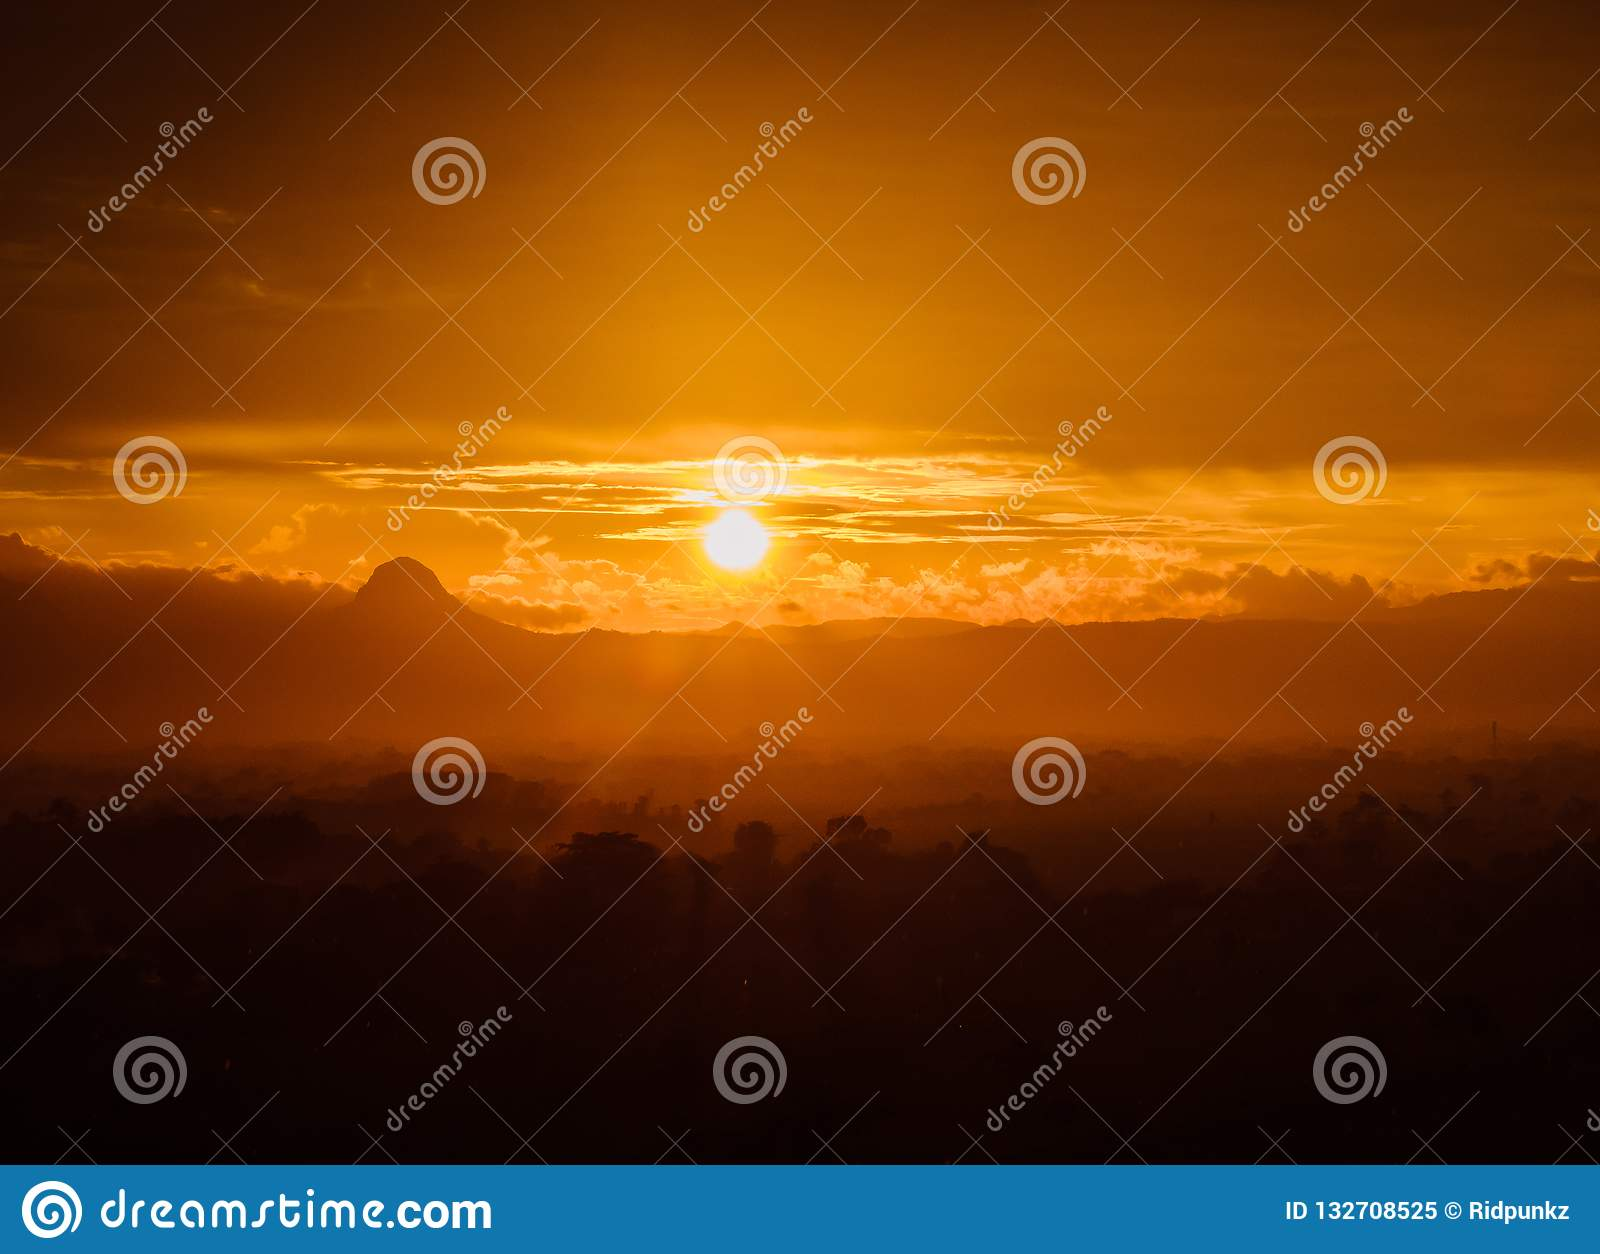 Beautiful Sunset, cloud, mist, and mountain scene in golden color.